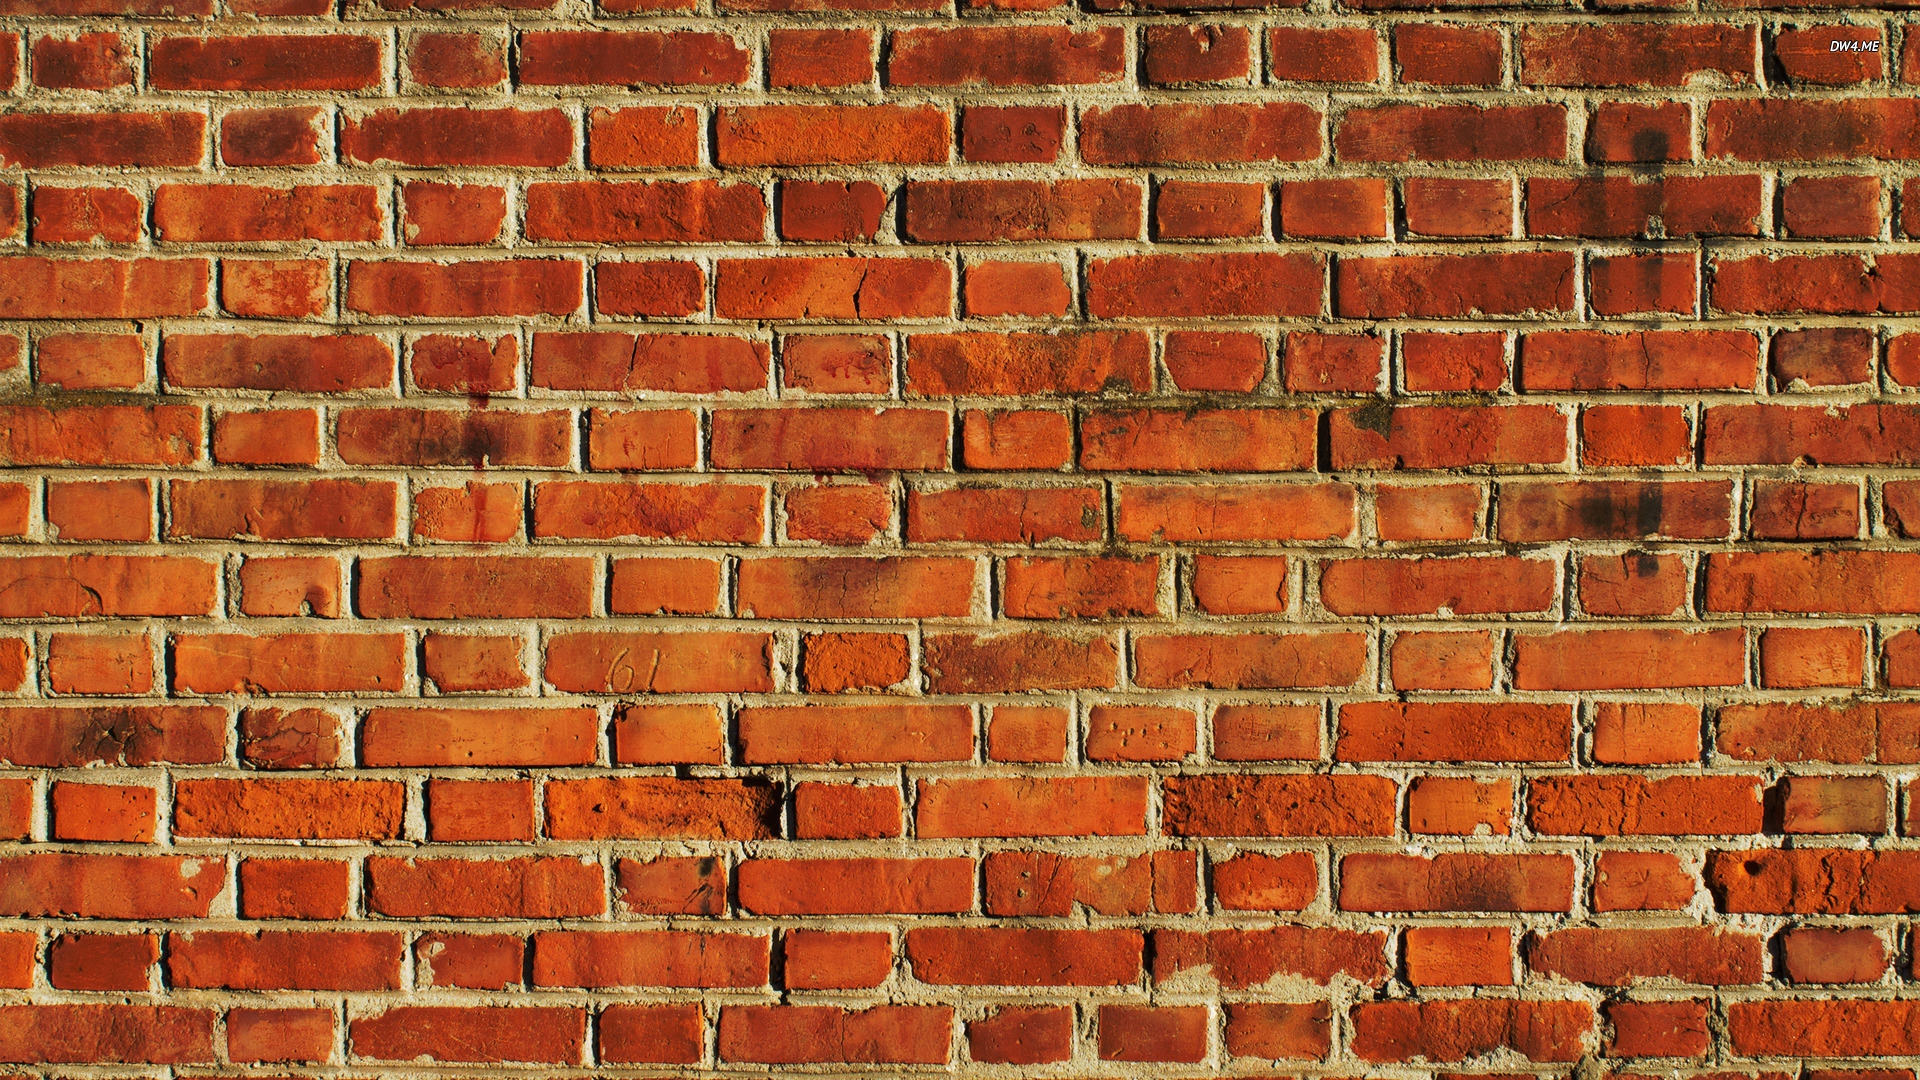 35 brick wall backgrounds psd vector eps jpg download freecreatives - Wall wallpaper designs ...